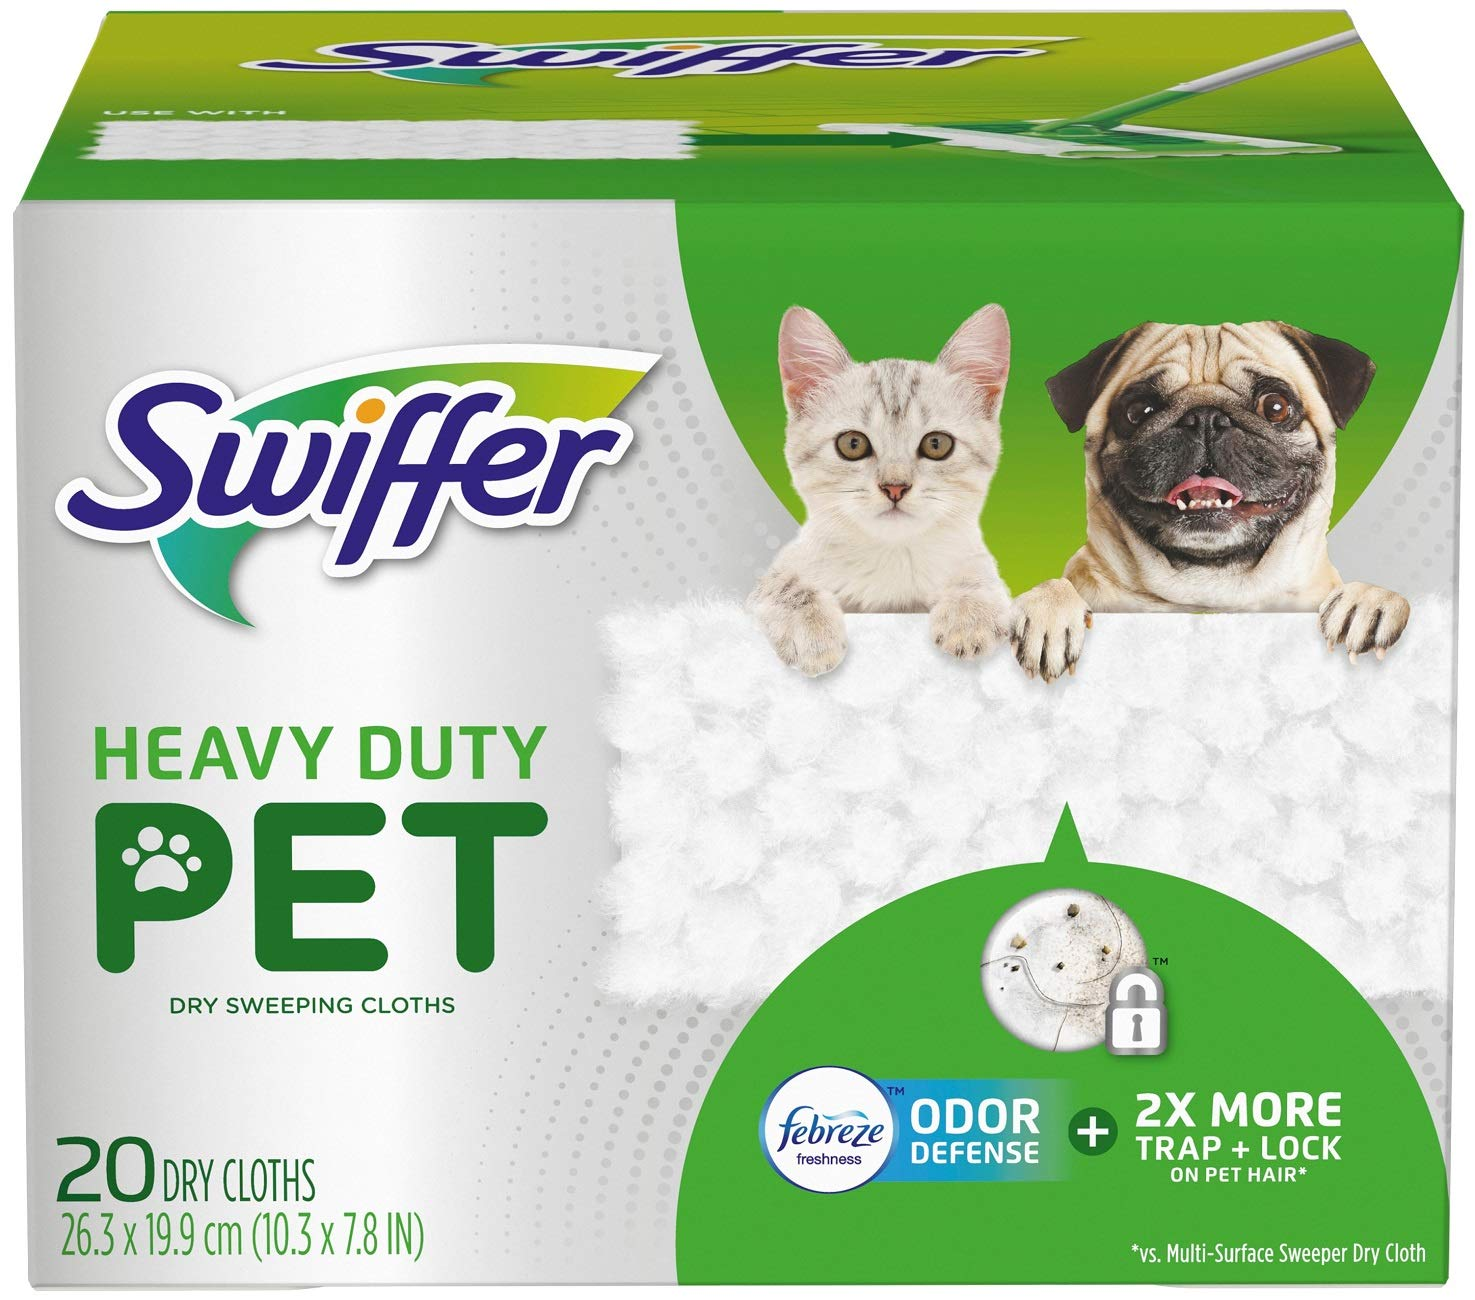 Swiffer Heavy Duty Pet Dry Sweeping Cloth Refills with Febreze Odor Defense, 20Count